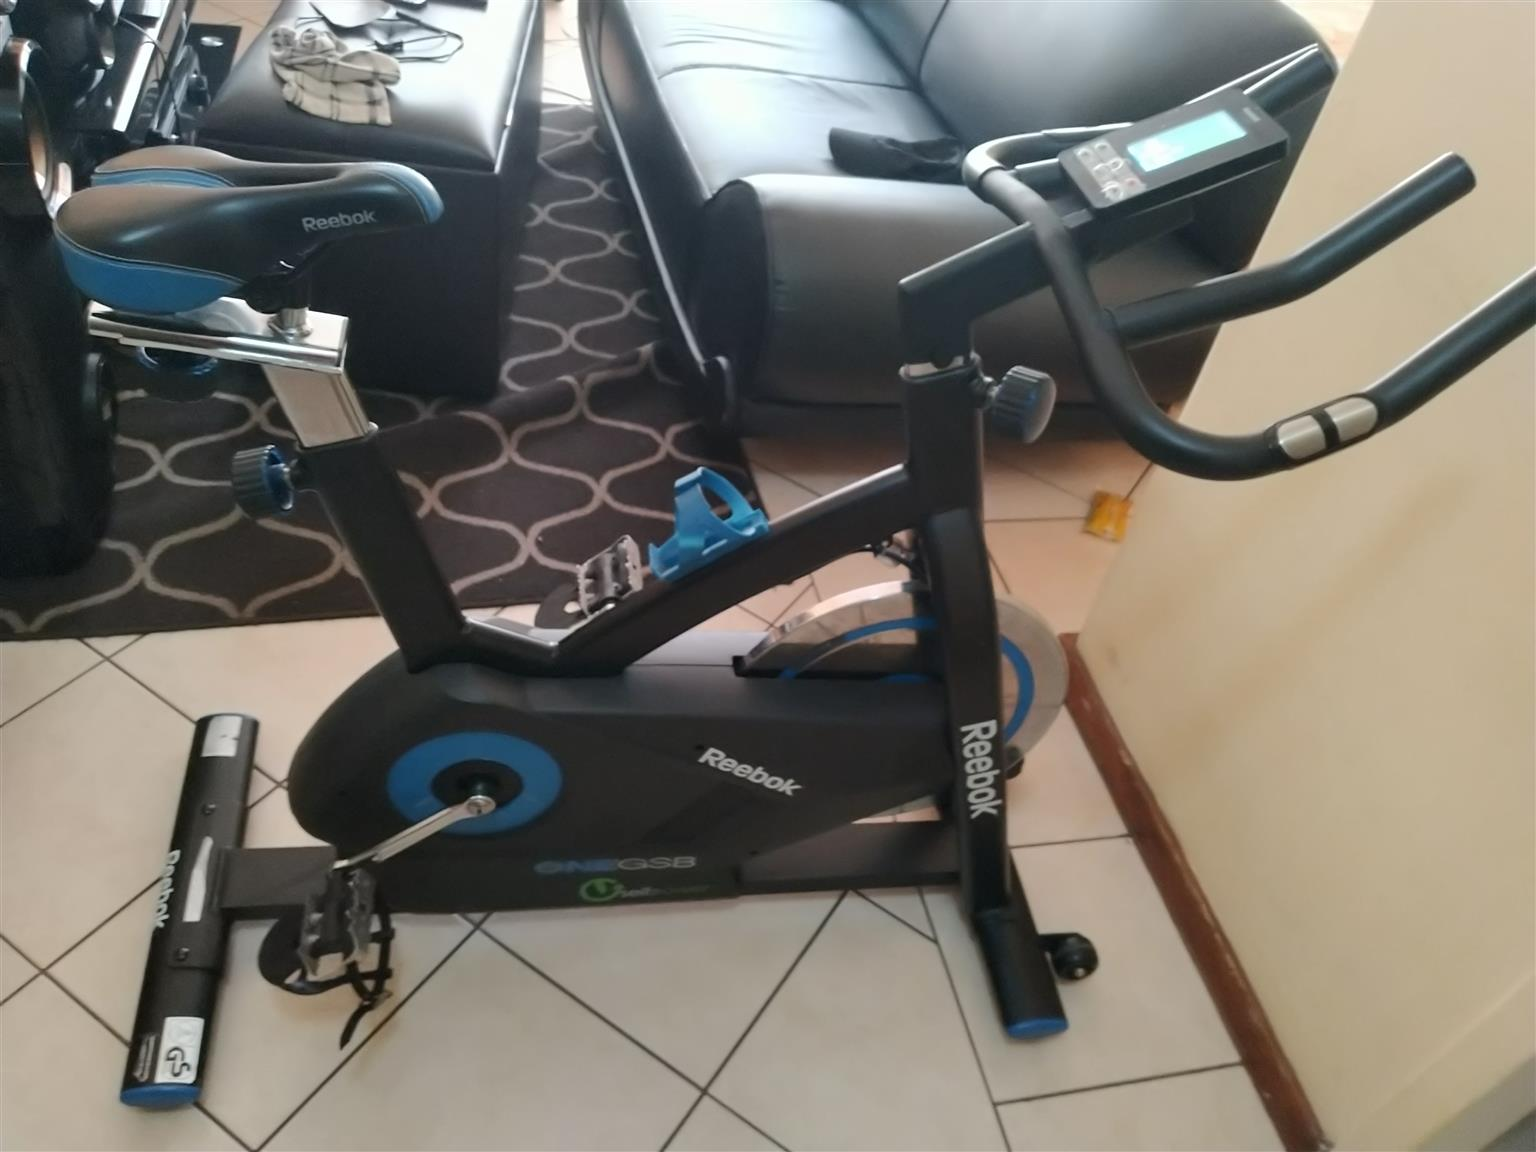 Reebok GSB One Spin bike ( Second hand) to Exchange for Good working second hand Laptop